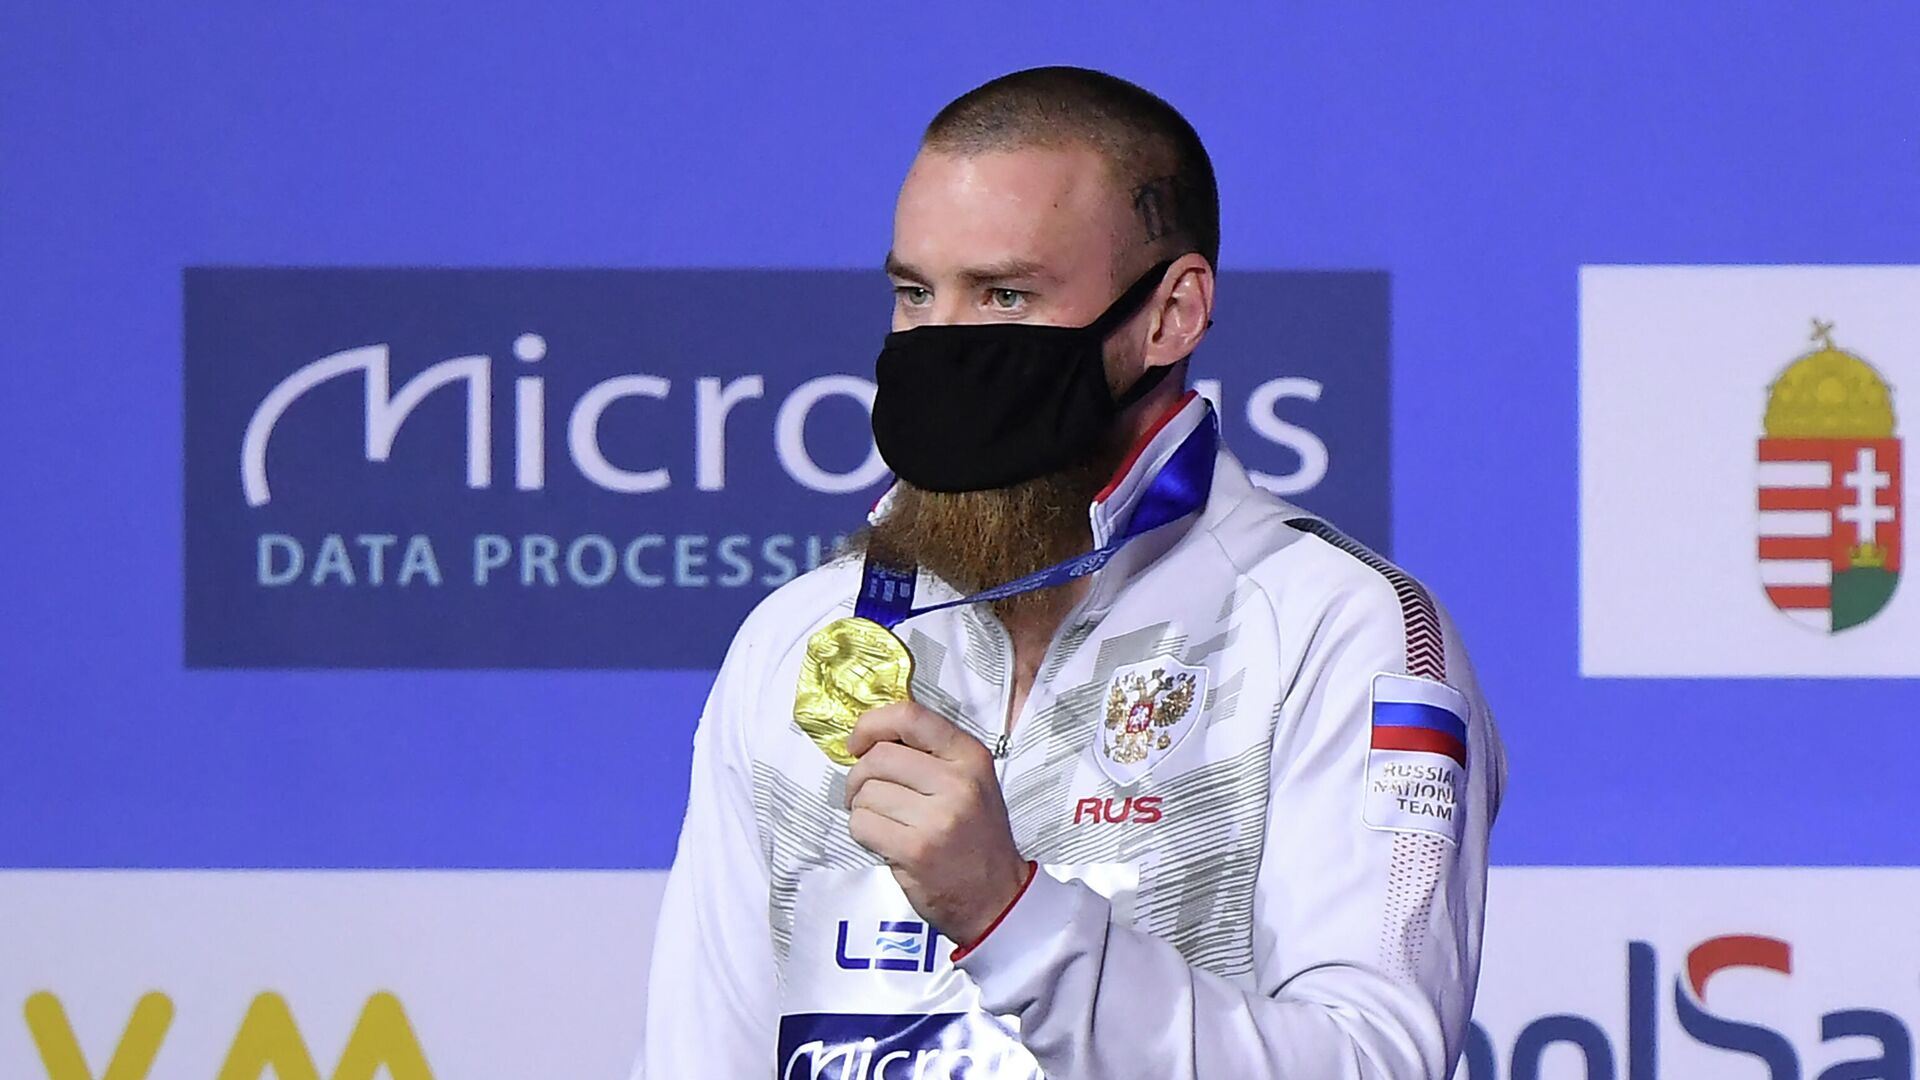 Gold medallist Russia's Evgenil Kuznetsov poses on the podium  after the Men's 3m Springboard Diving event during the LEN European Aquatics Championships at the Duna Arena in Budapest on May 14, 2021. (Photo by Attila KISBENEDEK / AFP) - РИА Новости, 1920, 14.05.2021